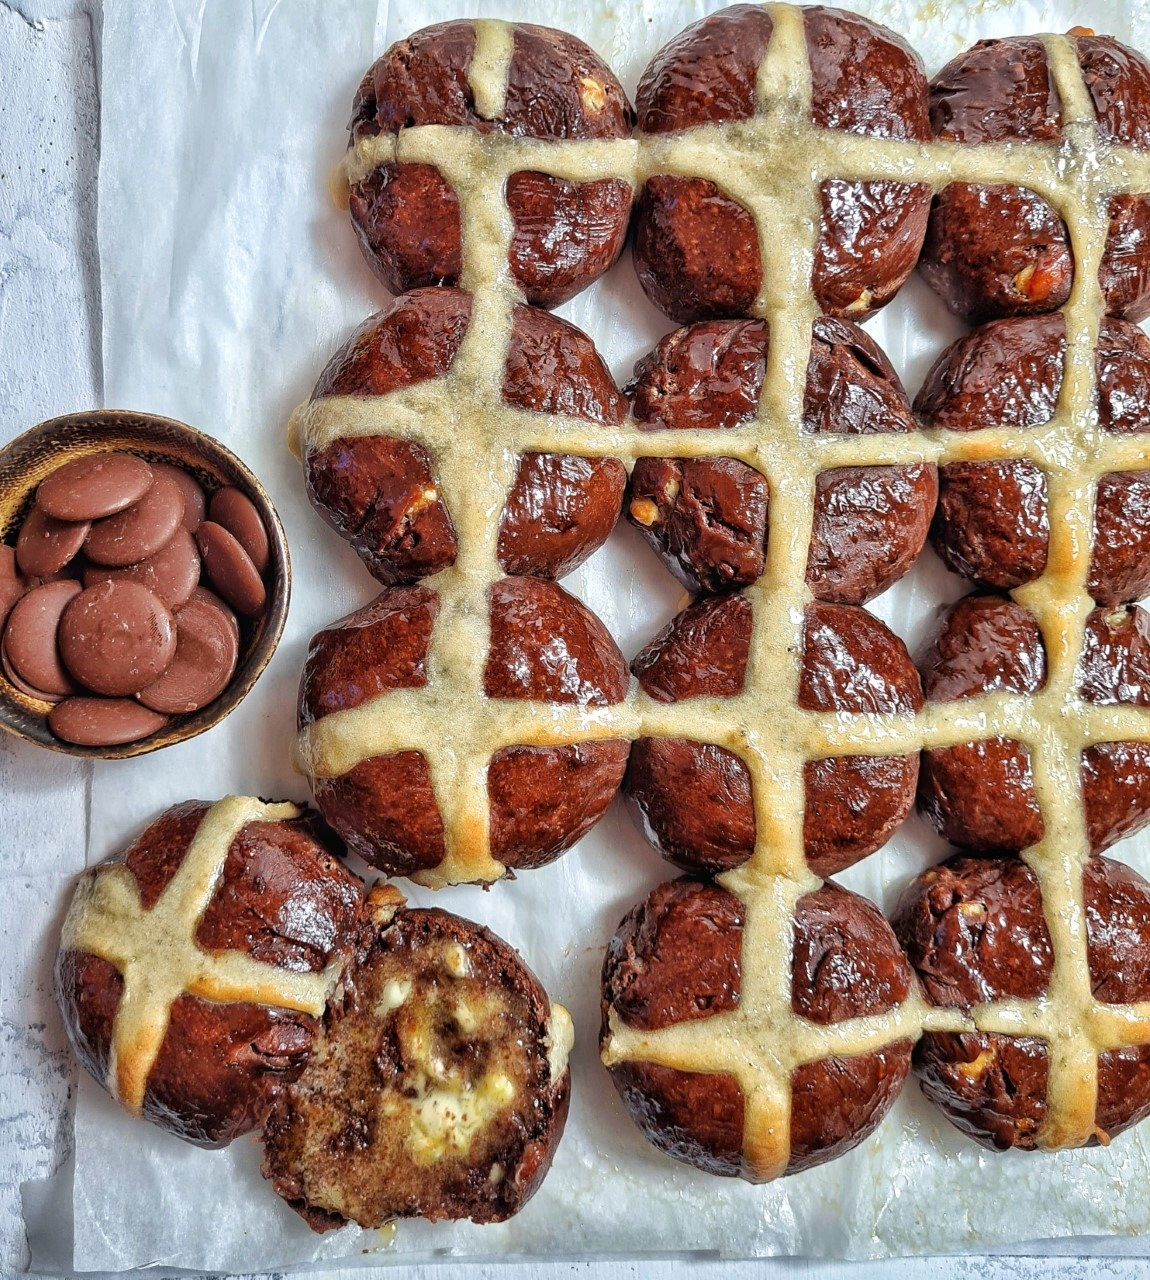 Triple Chocolate Hot Cross Buns with an Orange Marmalade Glaze